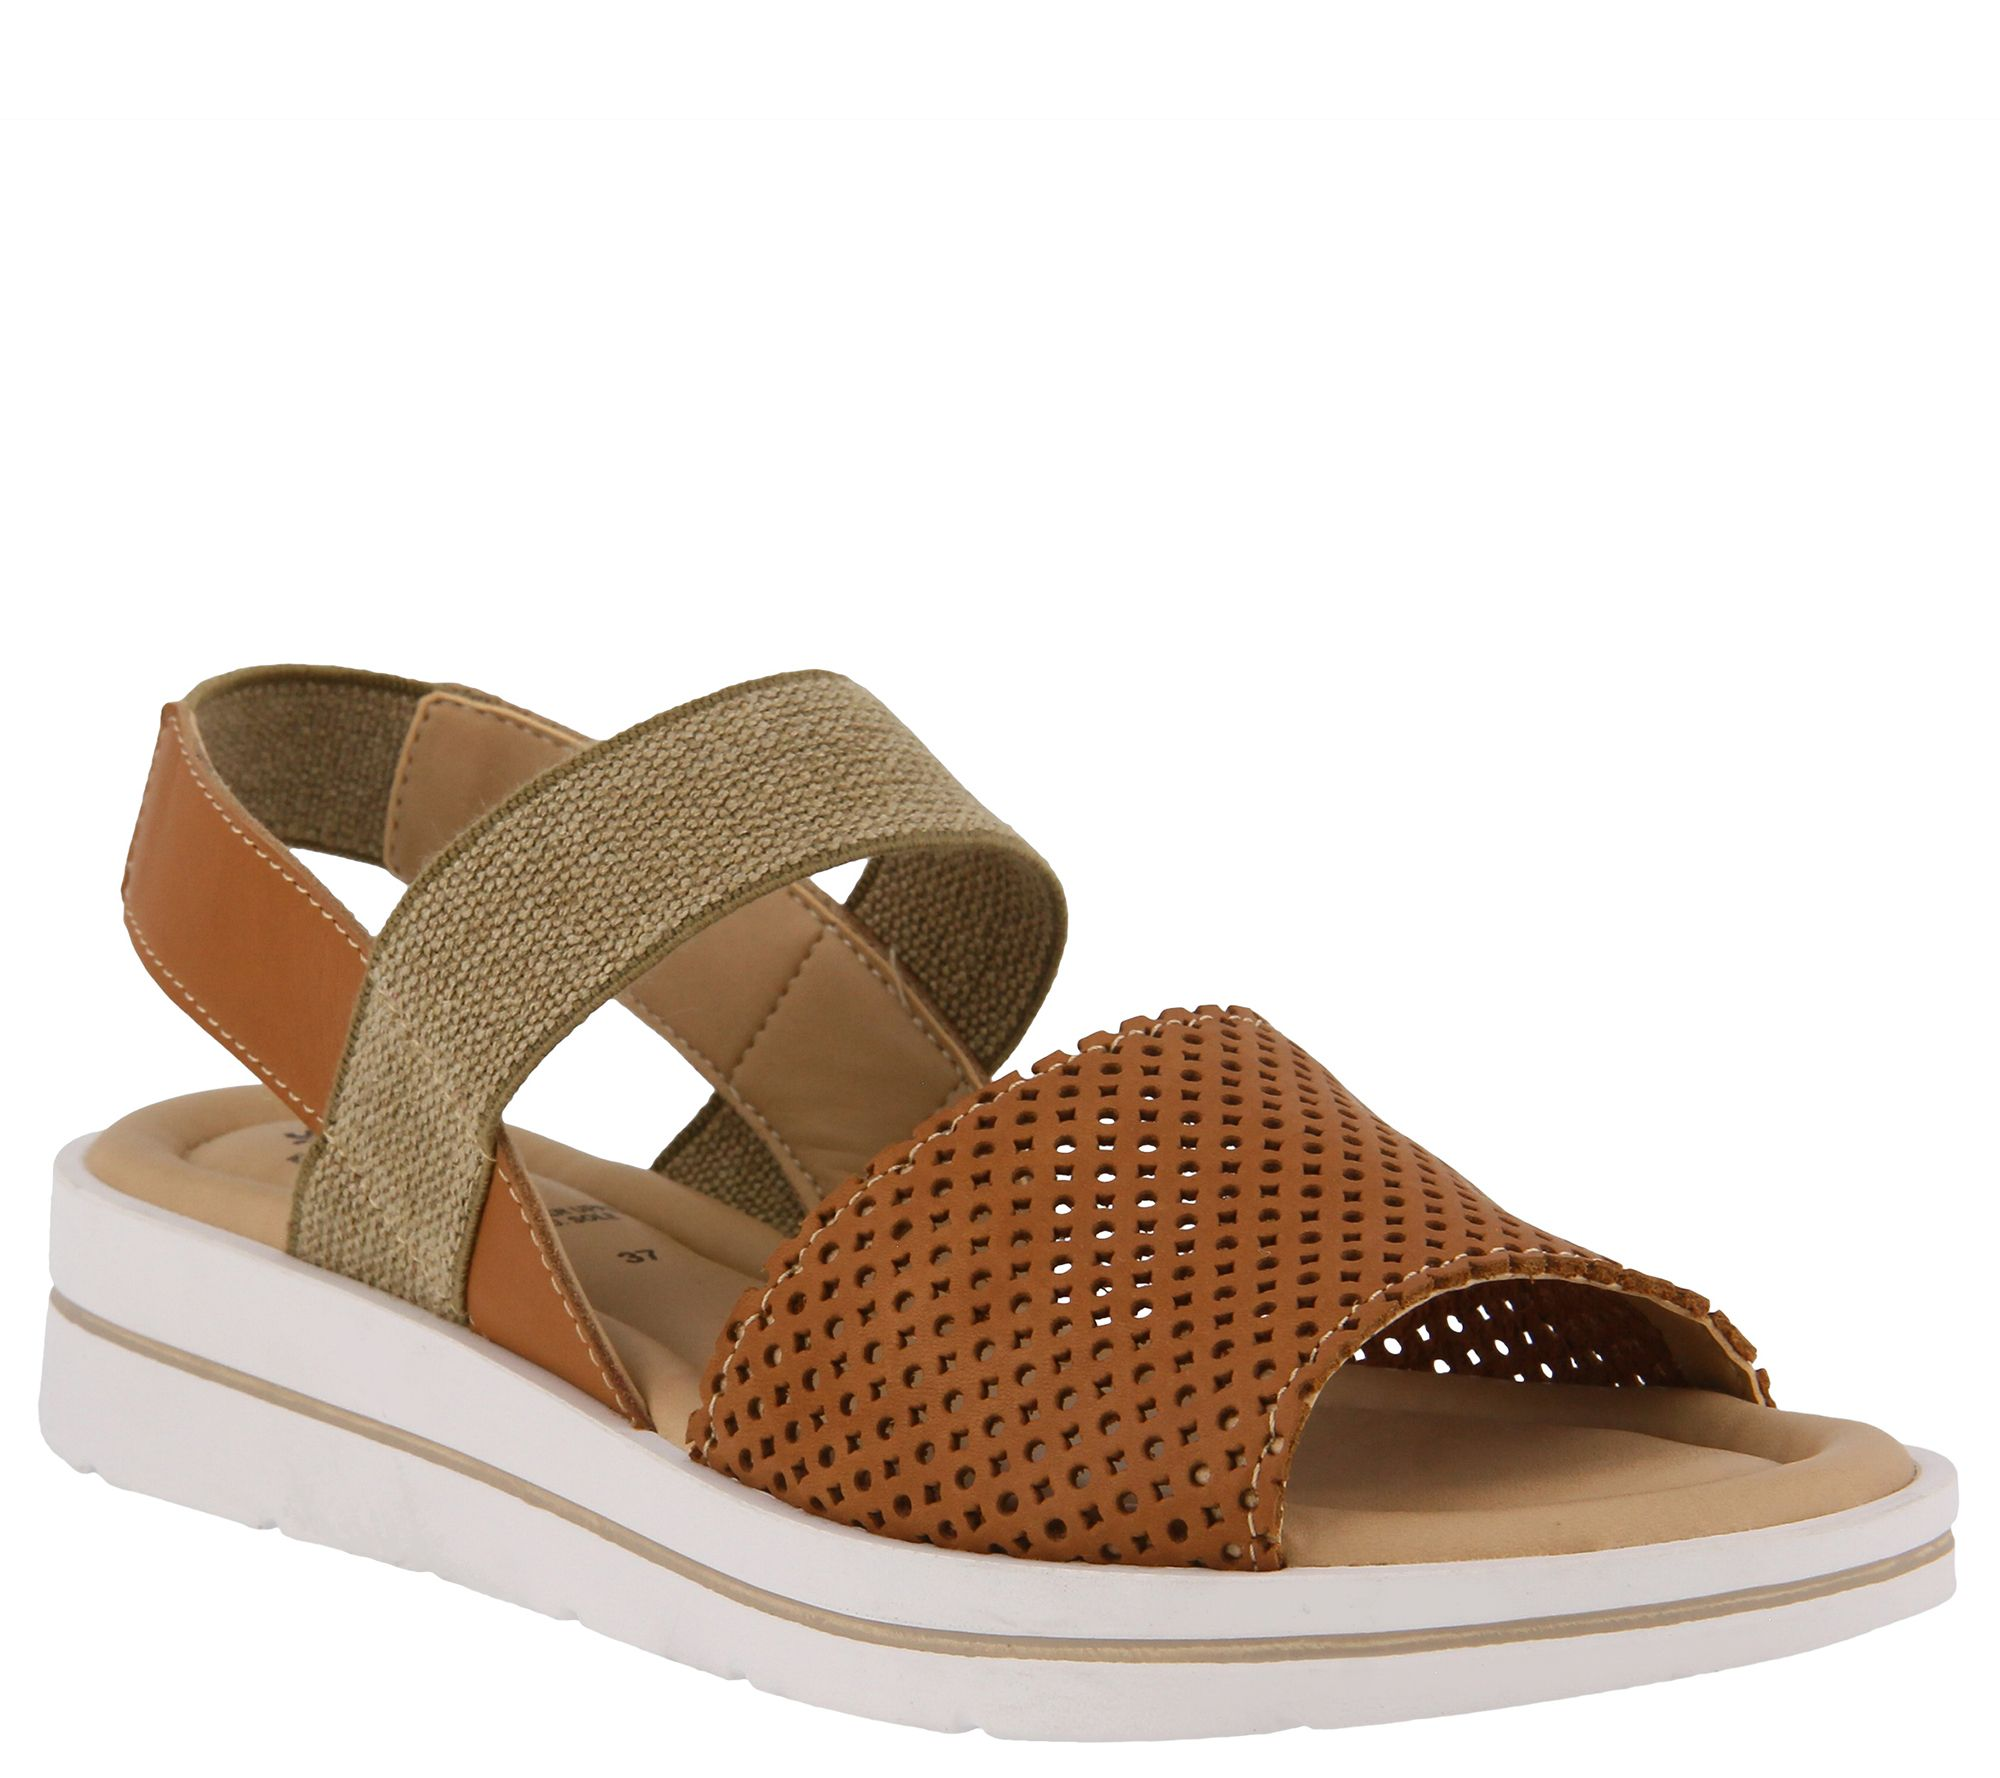 8ab7690c1ee Spring Step Leather Ankle-Strap Sandals - Travel — QVC.com